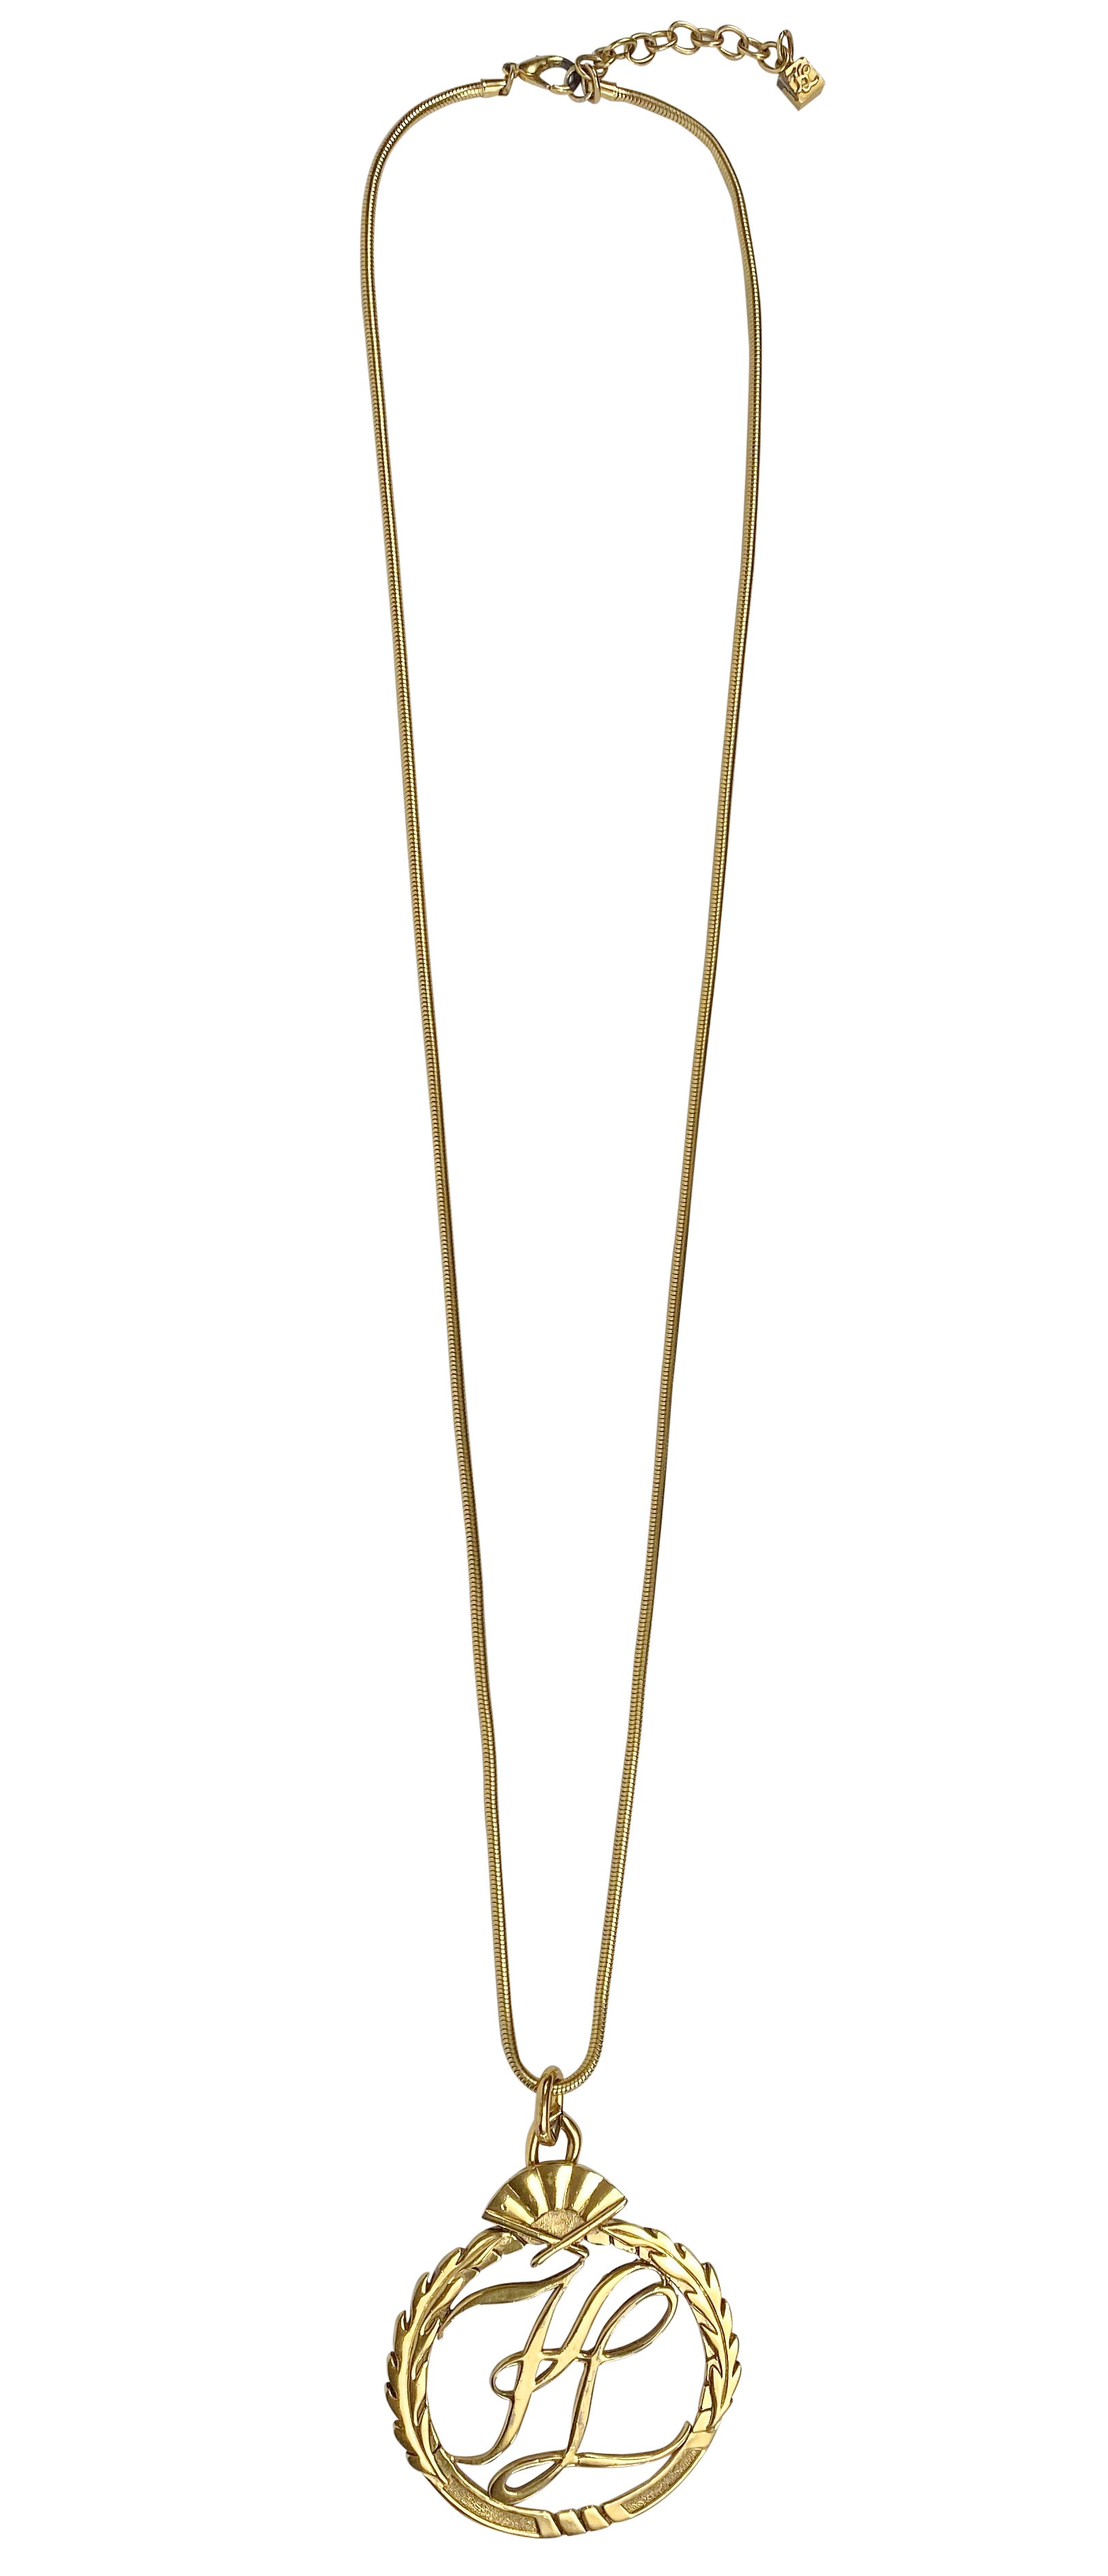 1980s Large Gold-Tone Logo Pendant Necklace